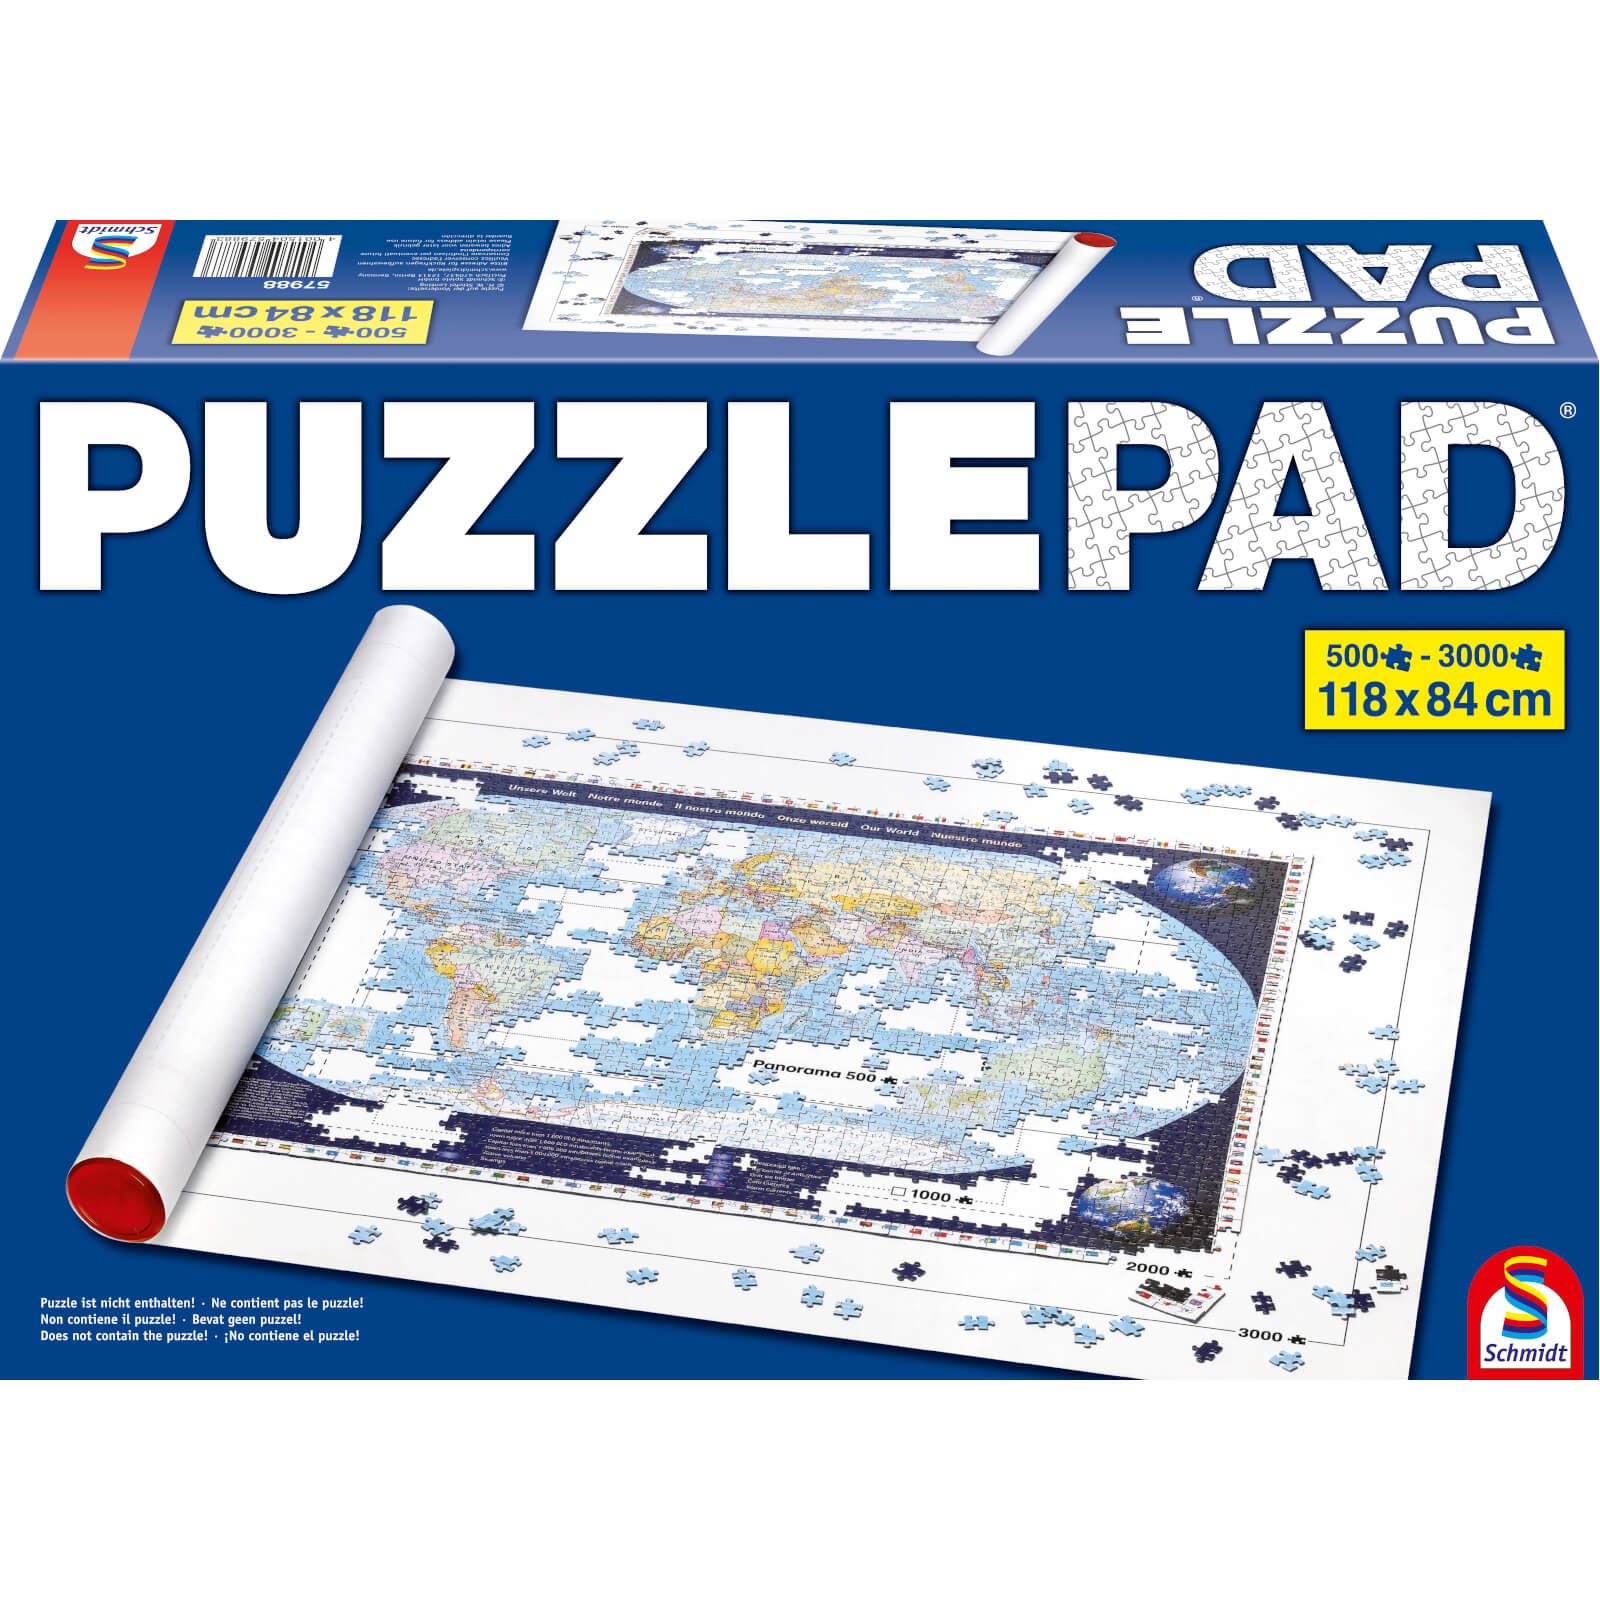 Puzzle Pad Up to 3000 Pieces